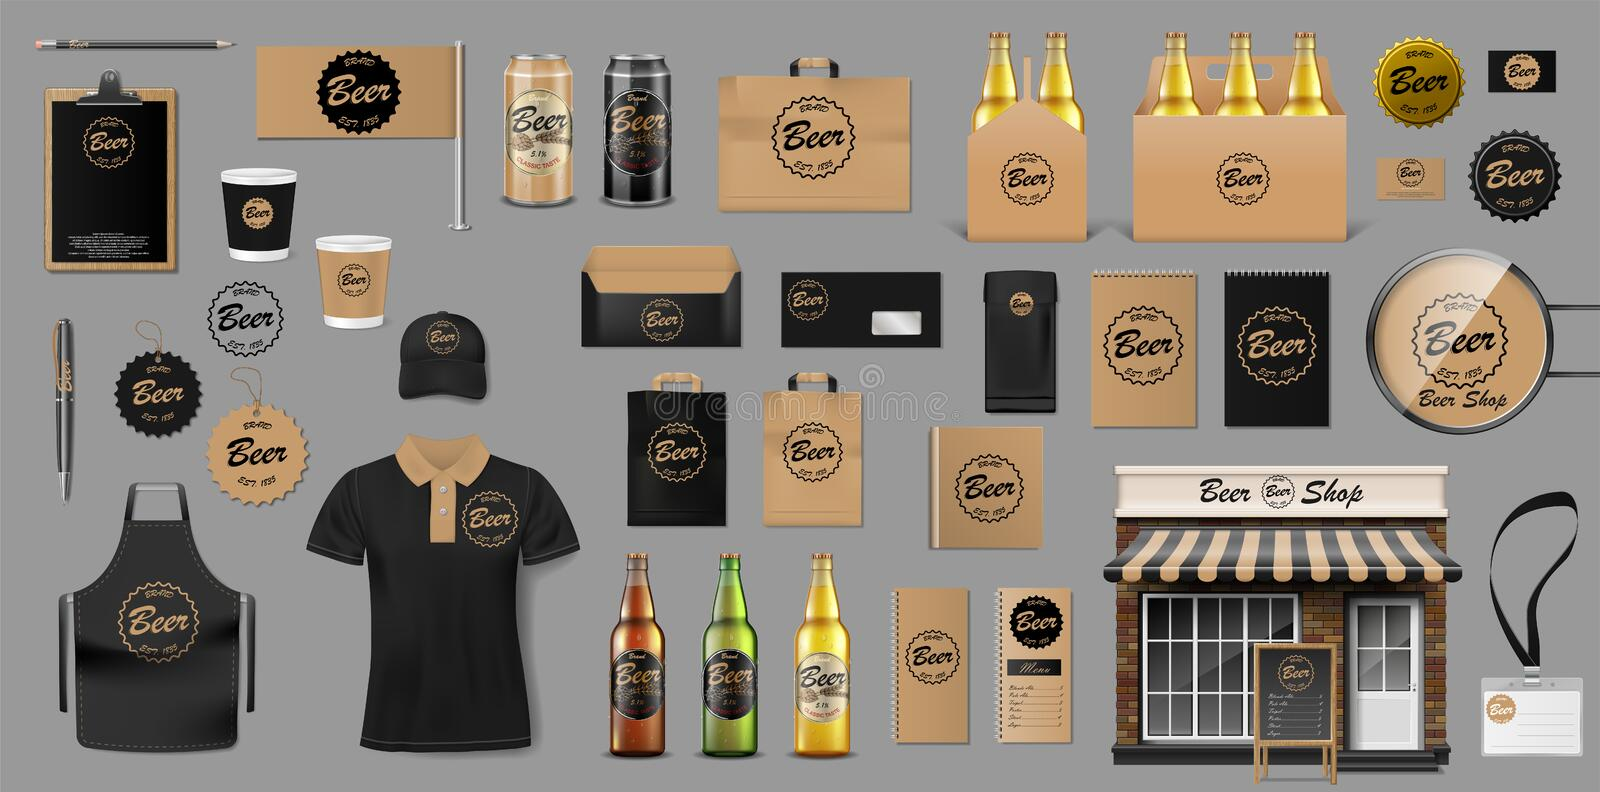 Corporate Branding identity template design for beer shop. Brewery elements for your Beer Pub or Bar. Realistic mockup. For your brand. Vector illustration EPS vector illustration